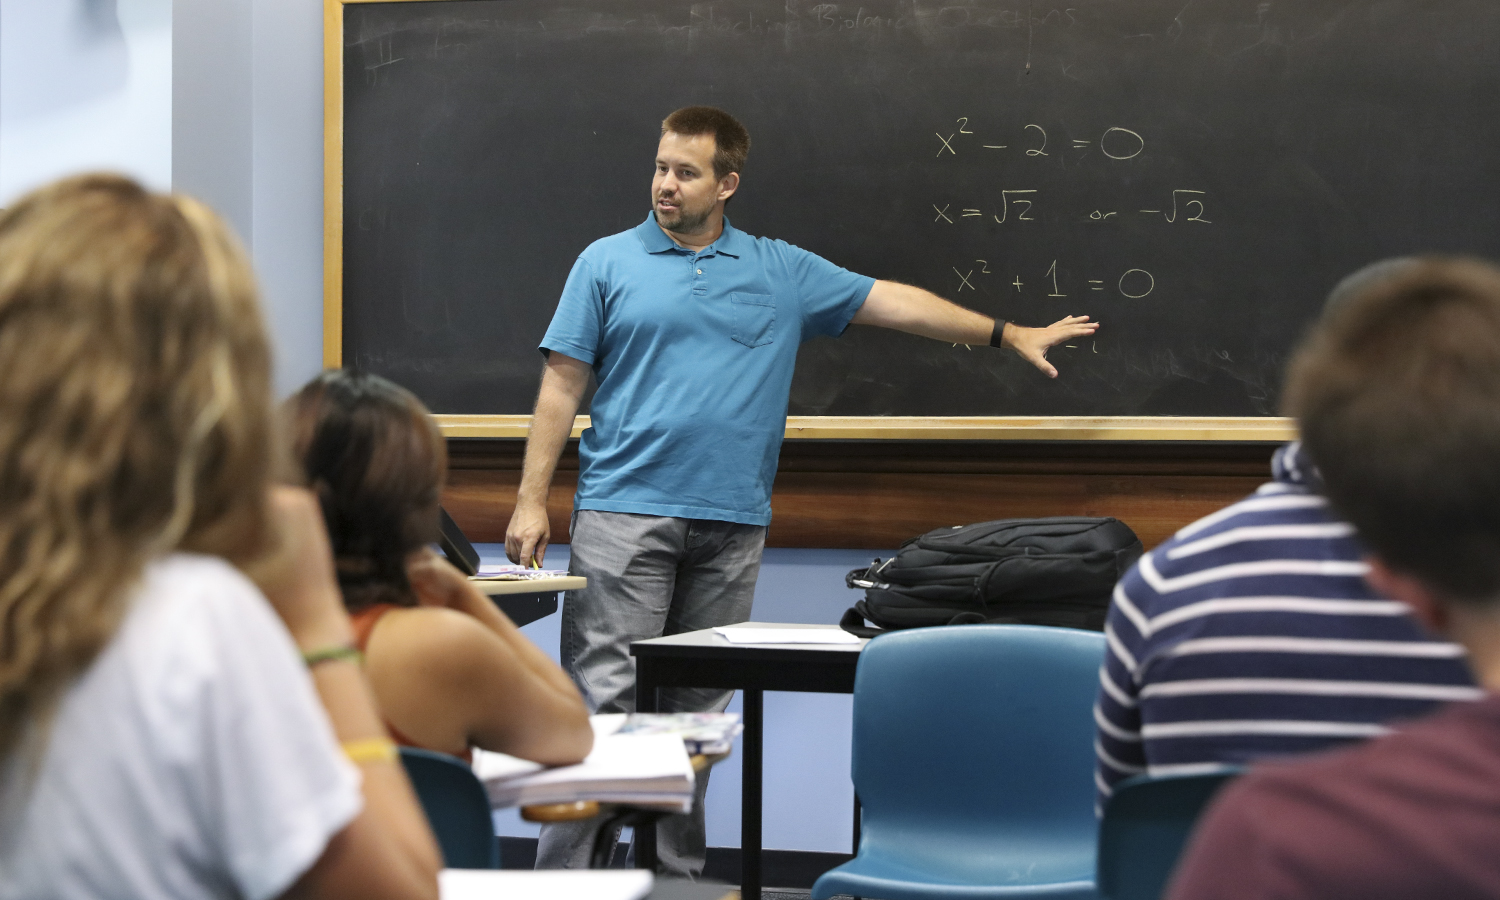 The class was Math 331, Foundations of Analysis. We were discussing set theory and number systems, which are the tools we use to understand the underpinnings of calculus. Jon Forde